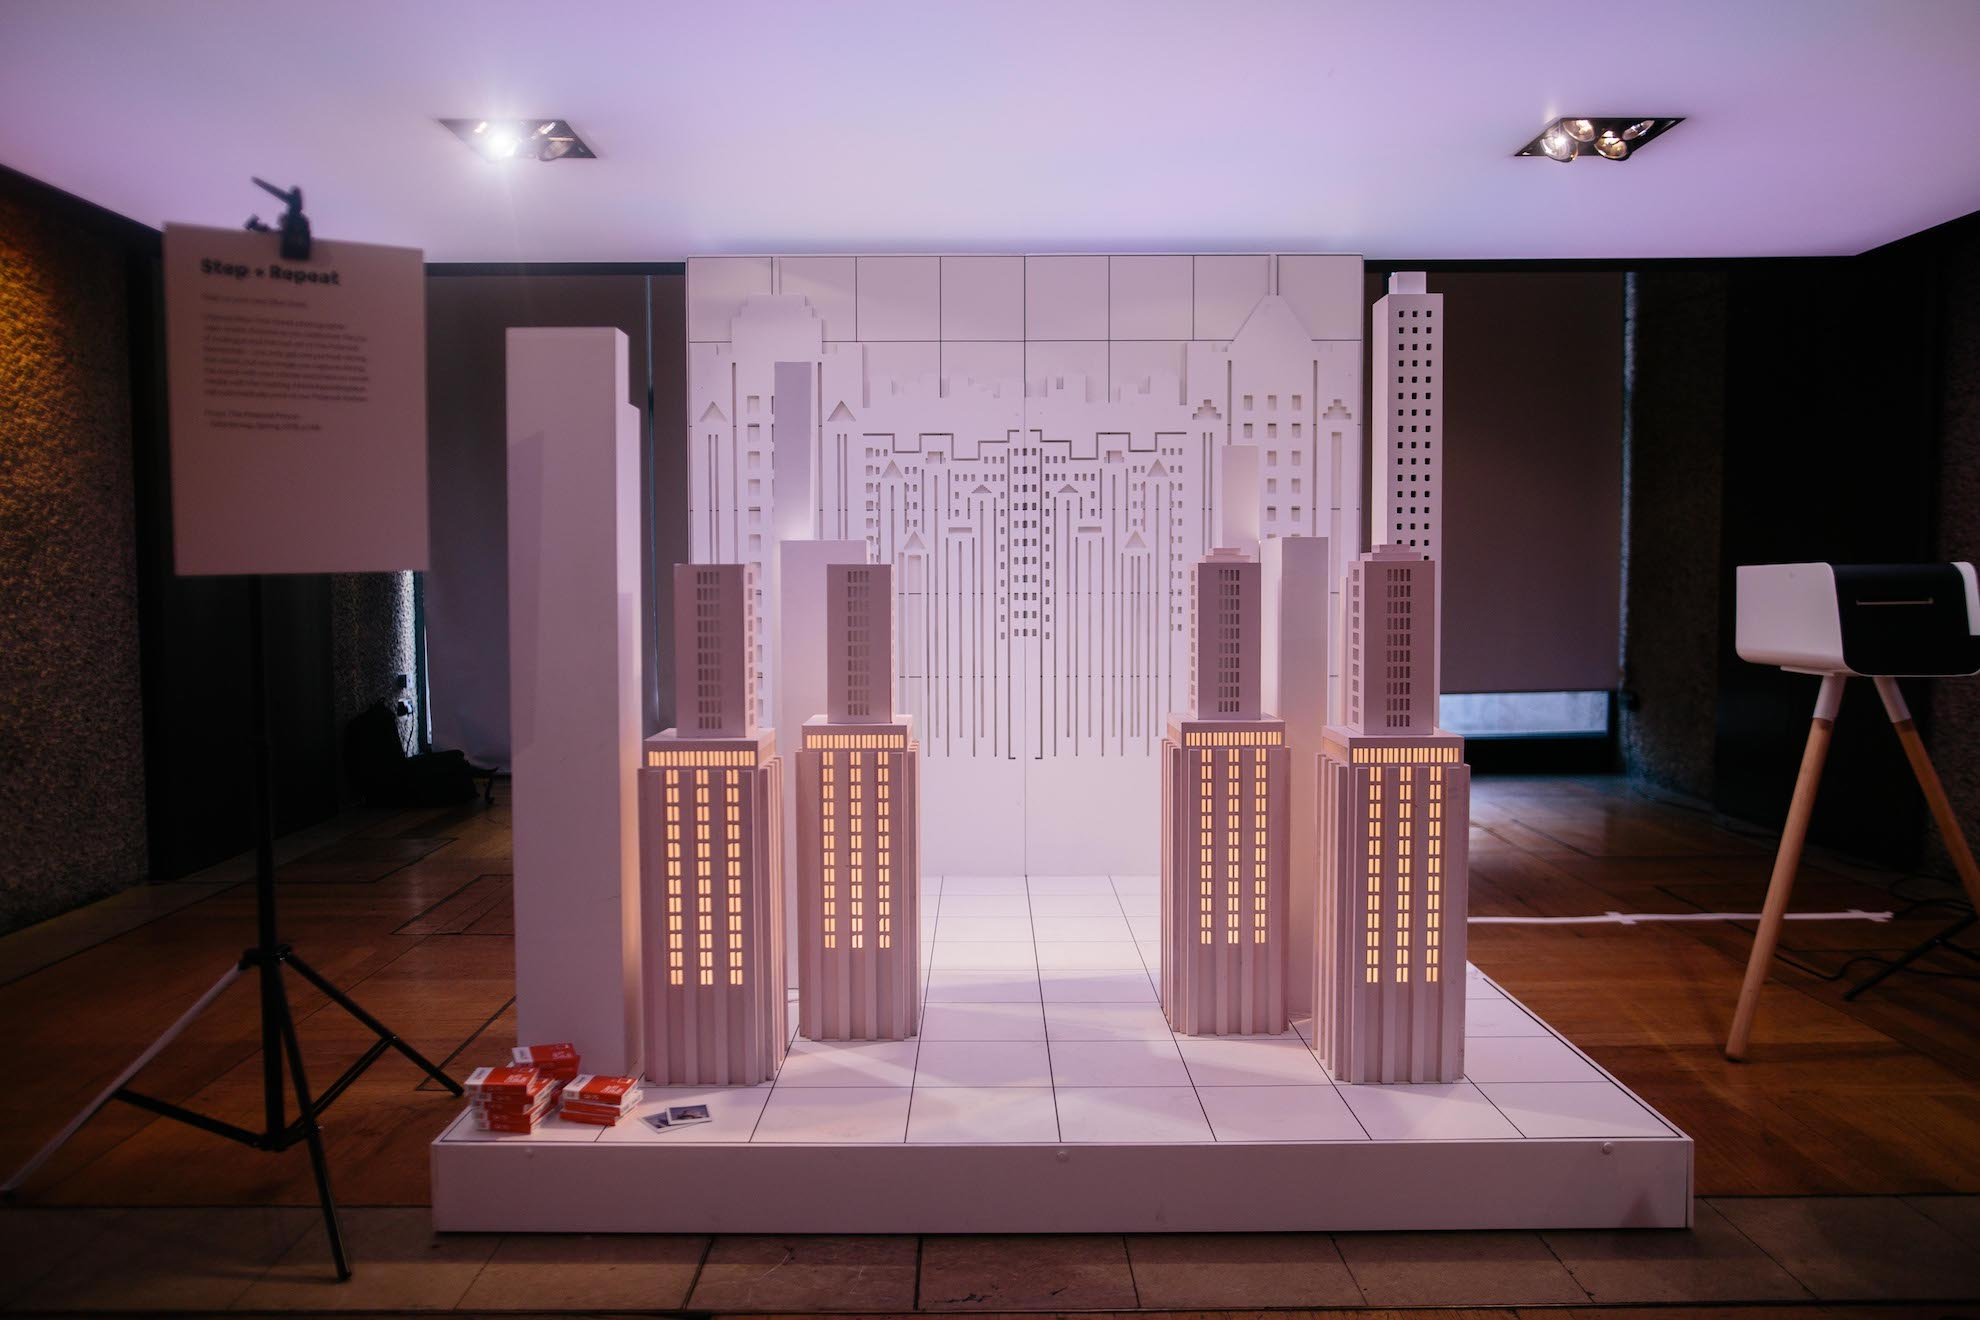 An image of a photobooth inspired by the New York City skyline